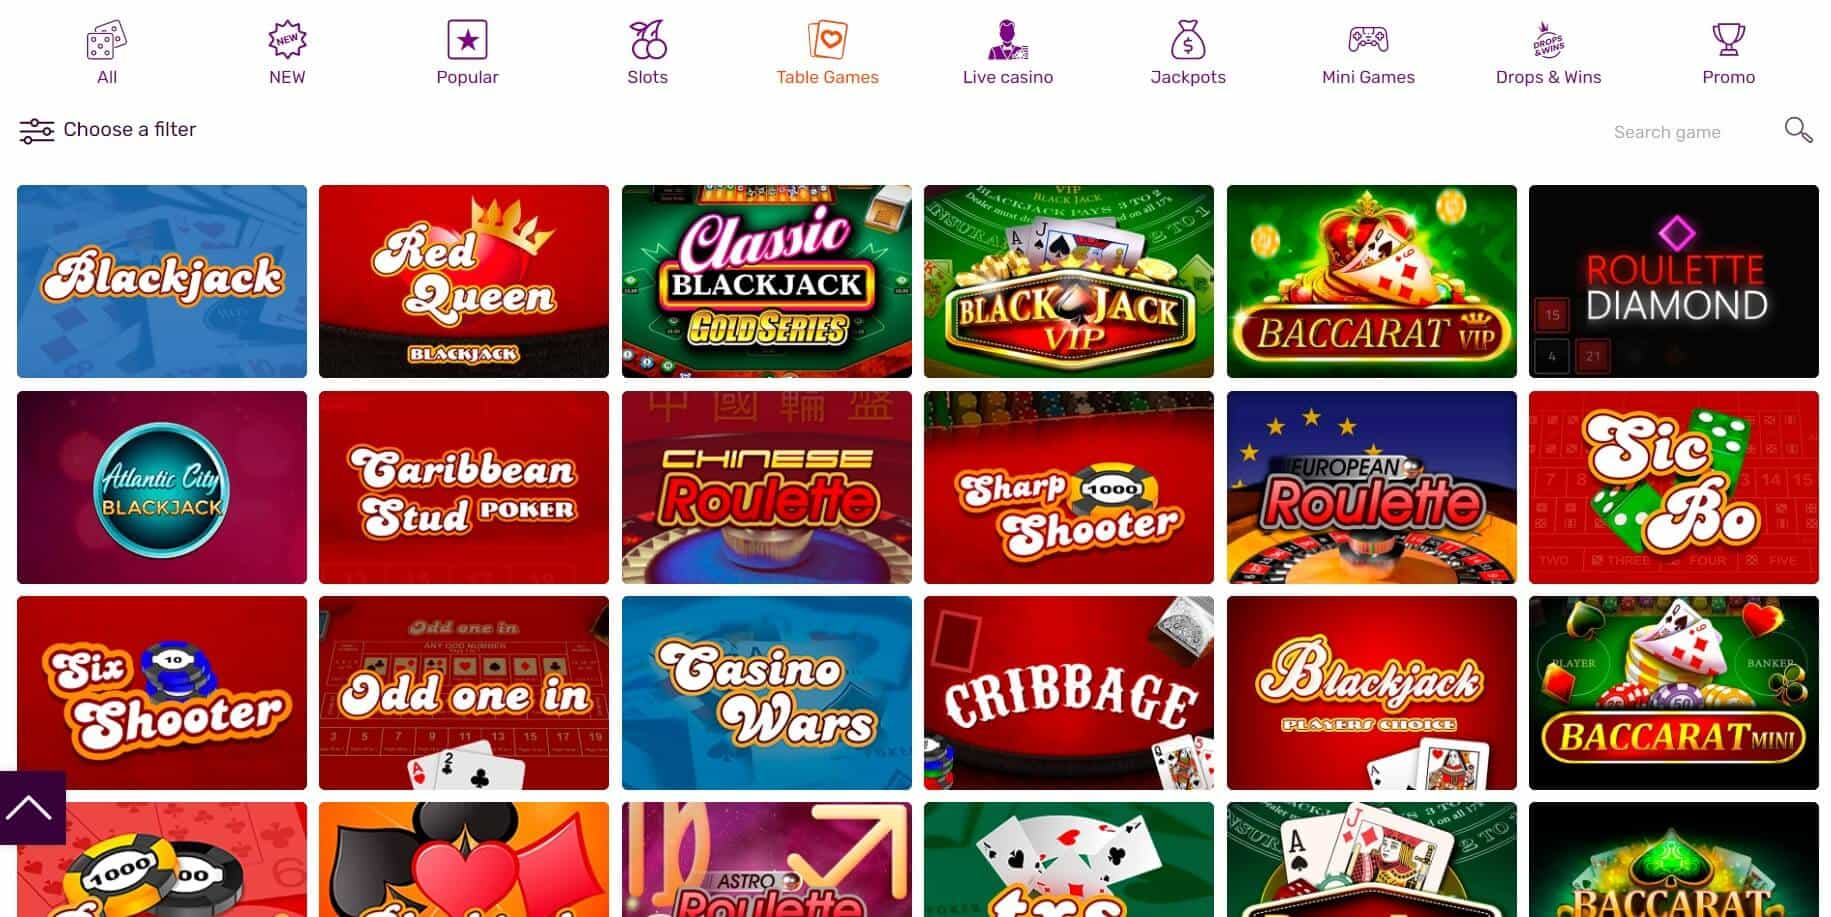 All Right casino table games